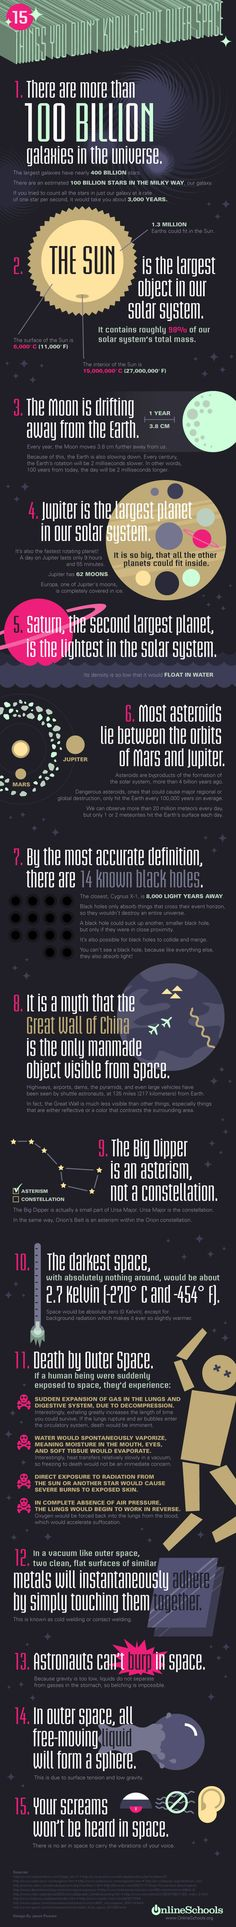 15 Things About Outer Space. I thought the last few were funny, about the screaming and burping. lol